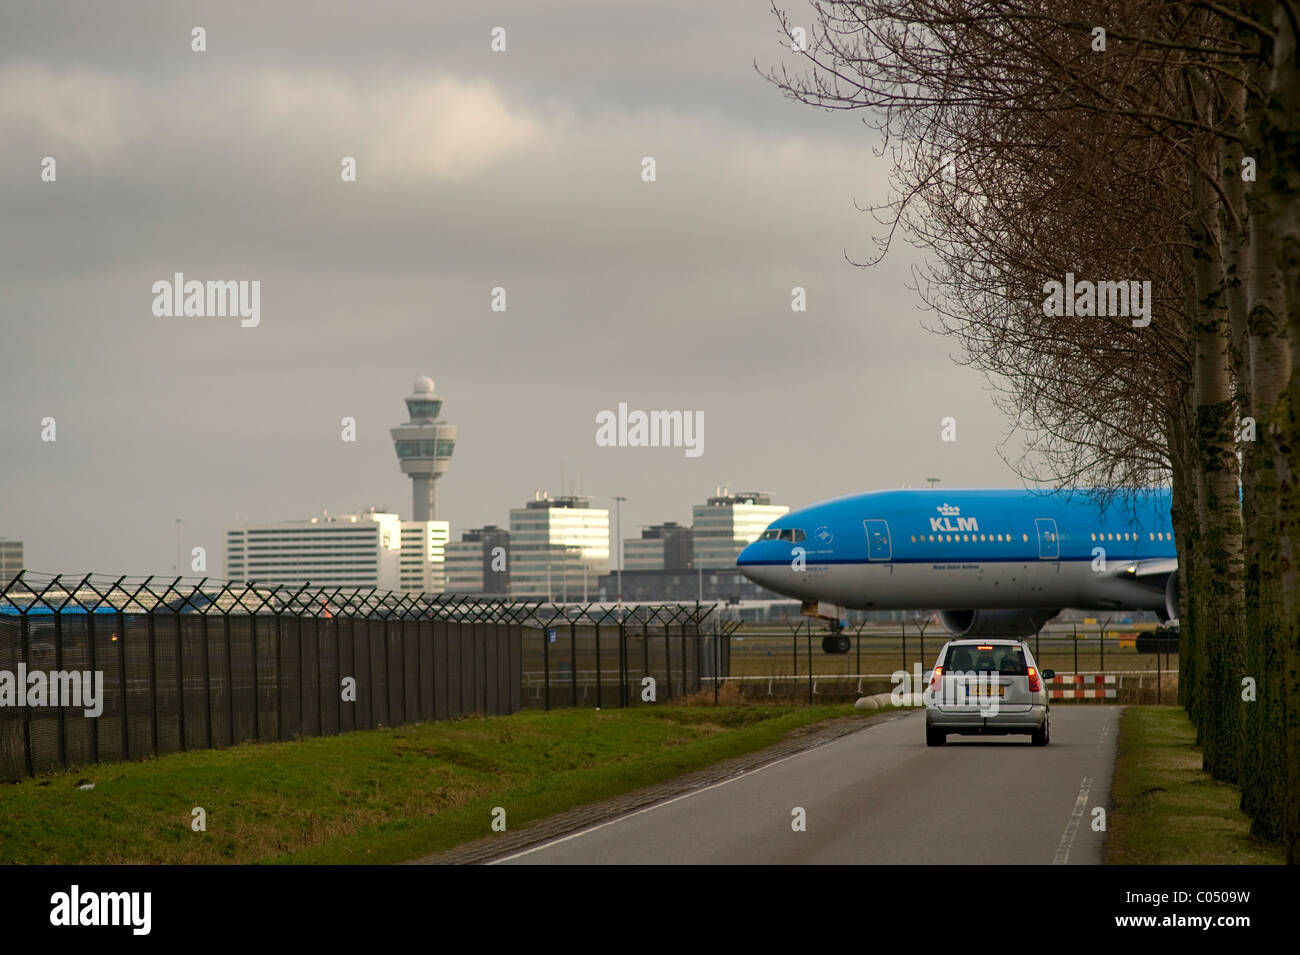 Airplane taxiing at Schiphol Airport Amsterdam - Stock Image